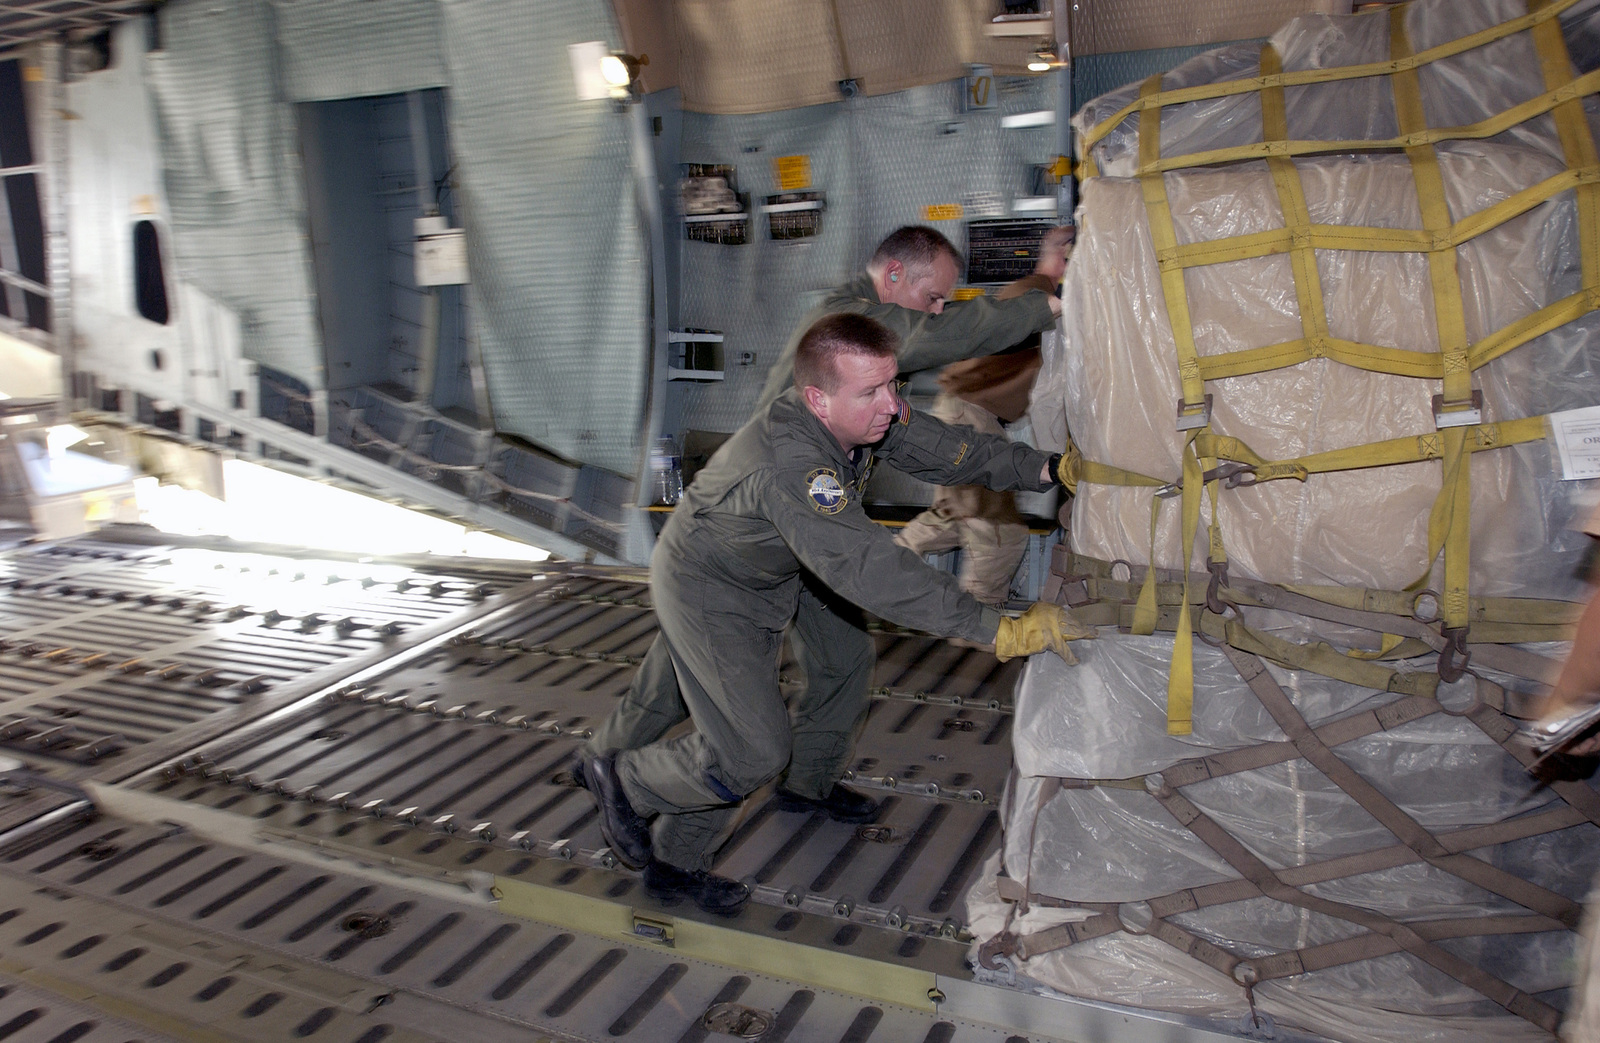 US Air Force (USAF) Technical Sergeant (TSGT) Eric J. Priest, a Loadmaster assigned to the 312th Airlift Squadron (AS), Dover Air Force Base (AFB), Delaware, pushes a pallet of redeployment equipment off of a C-5 Galaxy cargo aircraft during a redeployment mission in support of Operation IRAQI FREEDOM